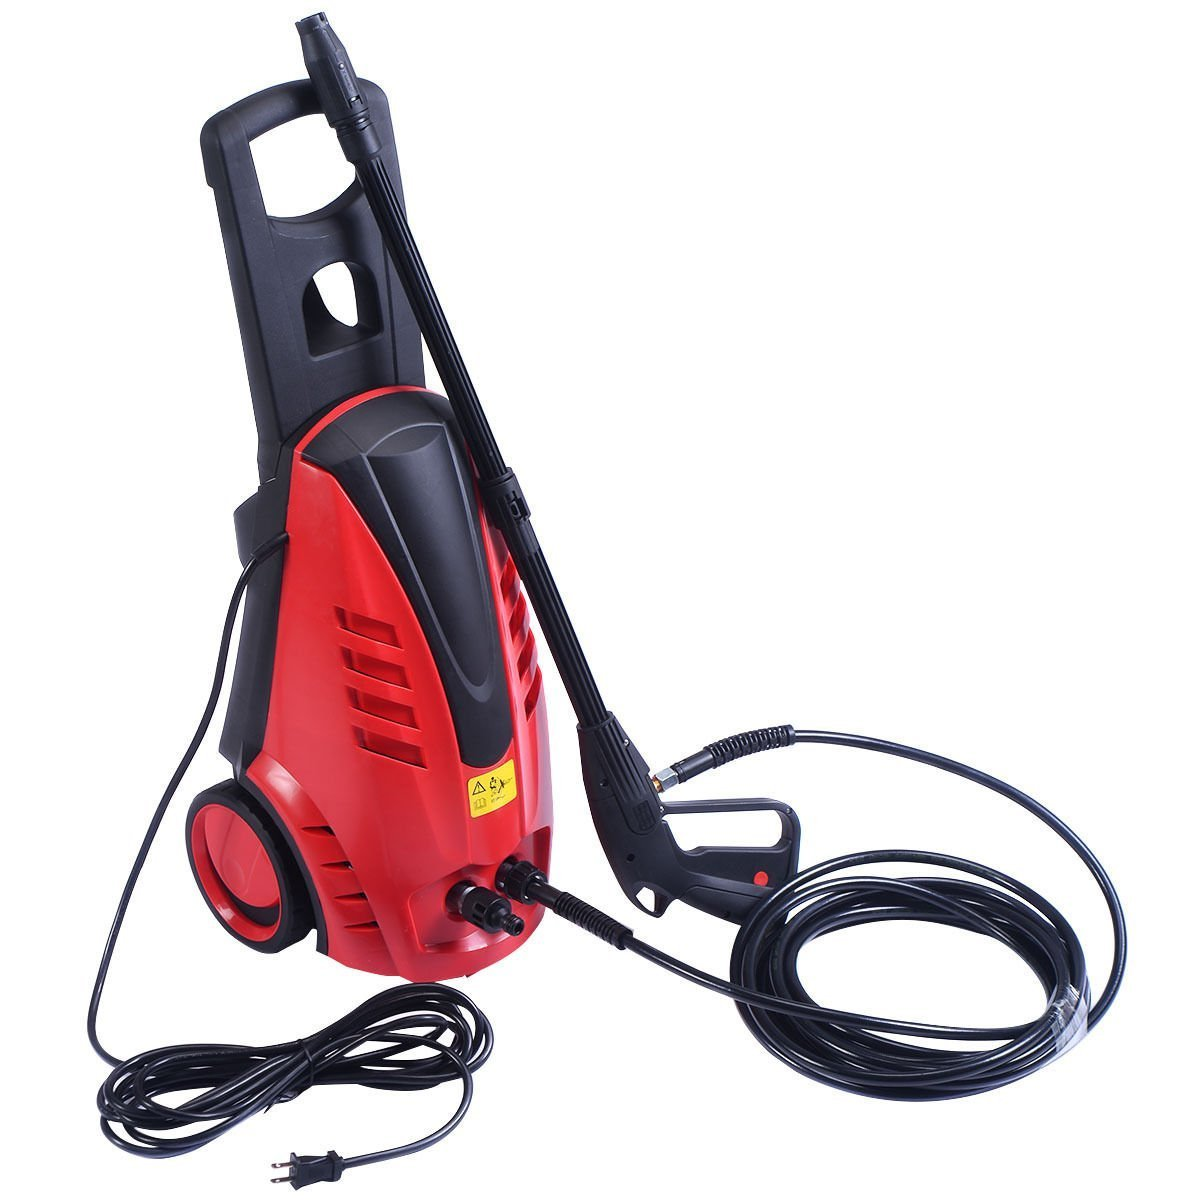 The Best Electric Pressure Washers For Your Garden: Reviews & Buying Guide 10